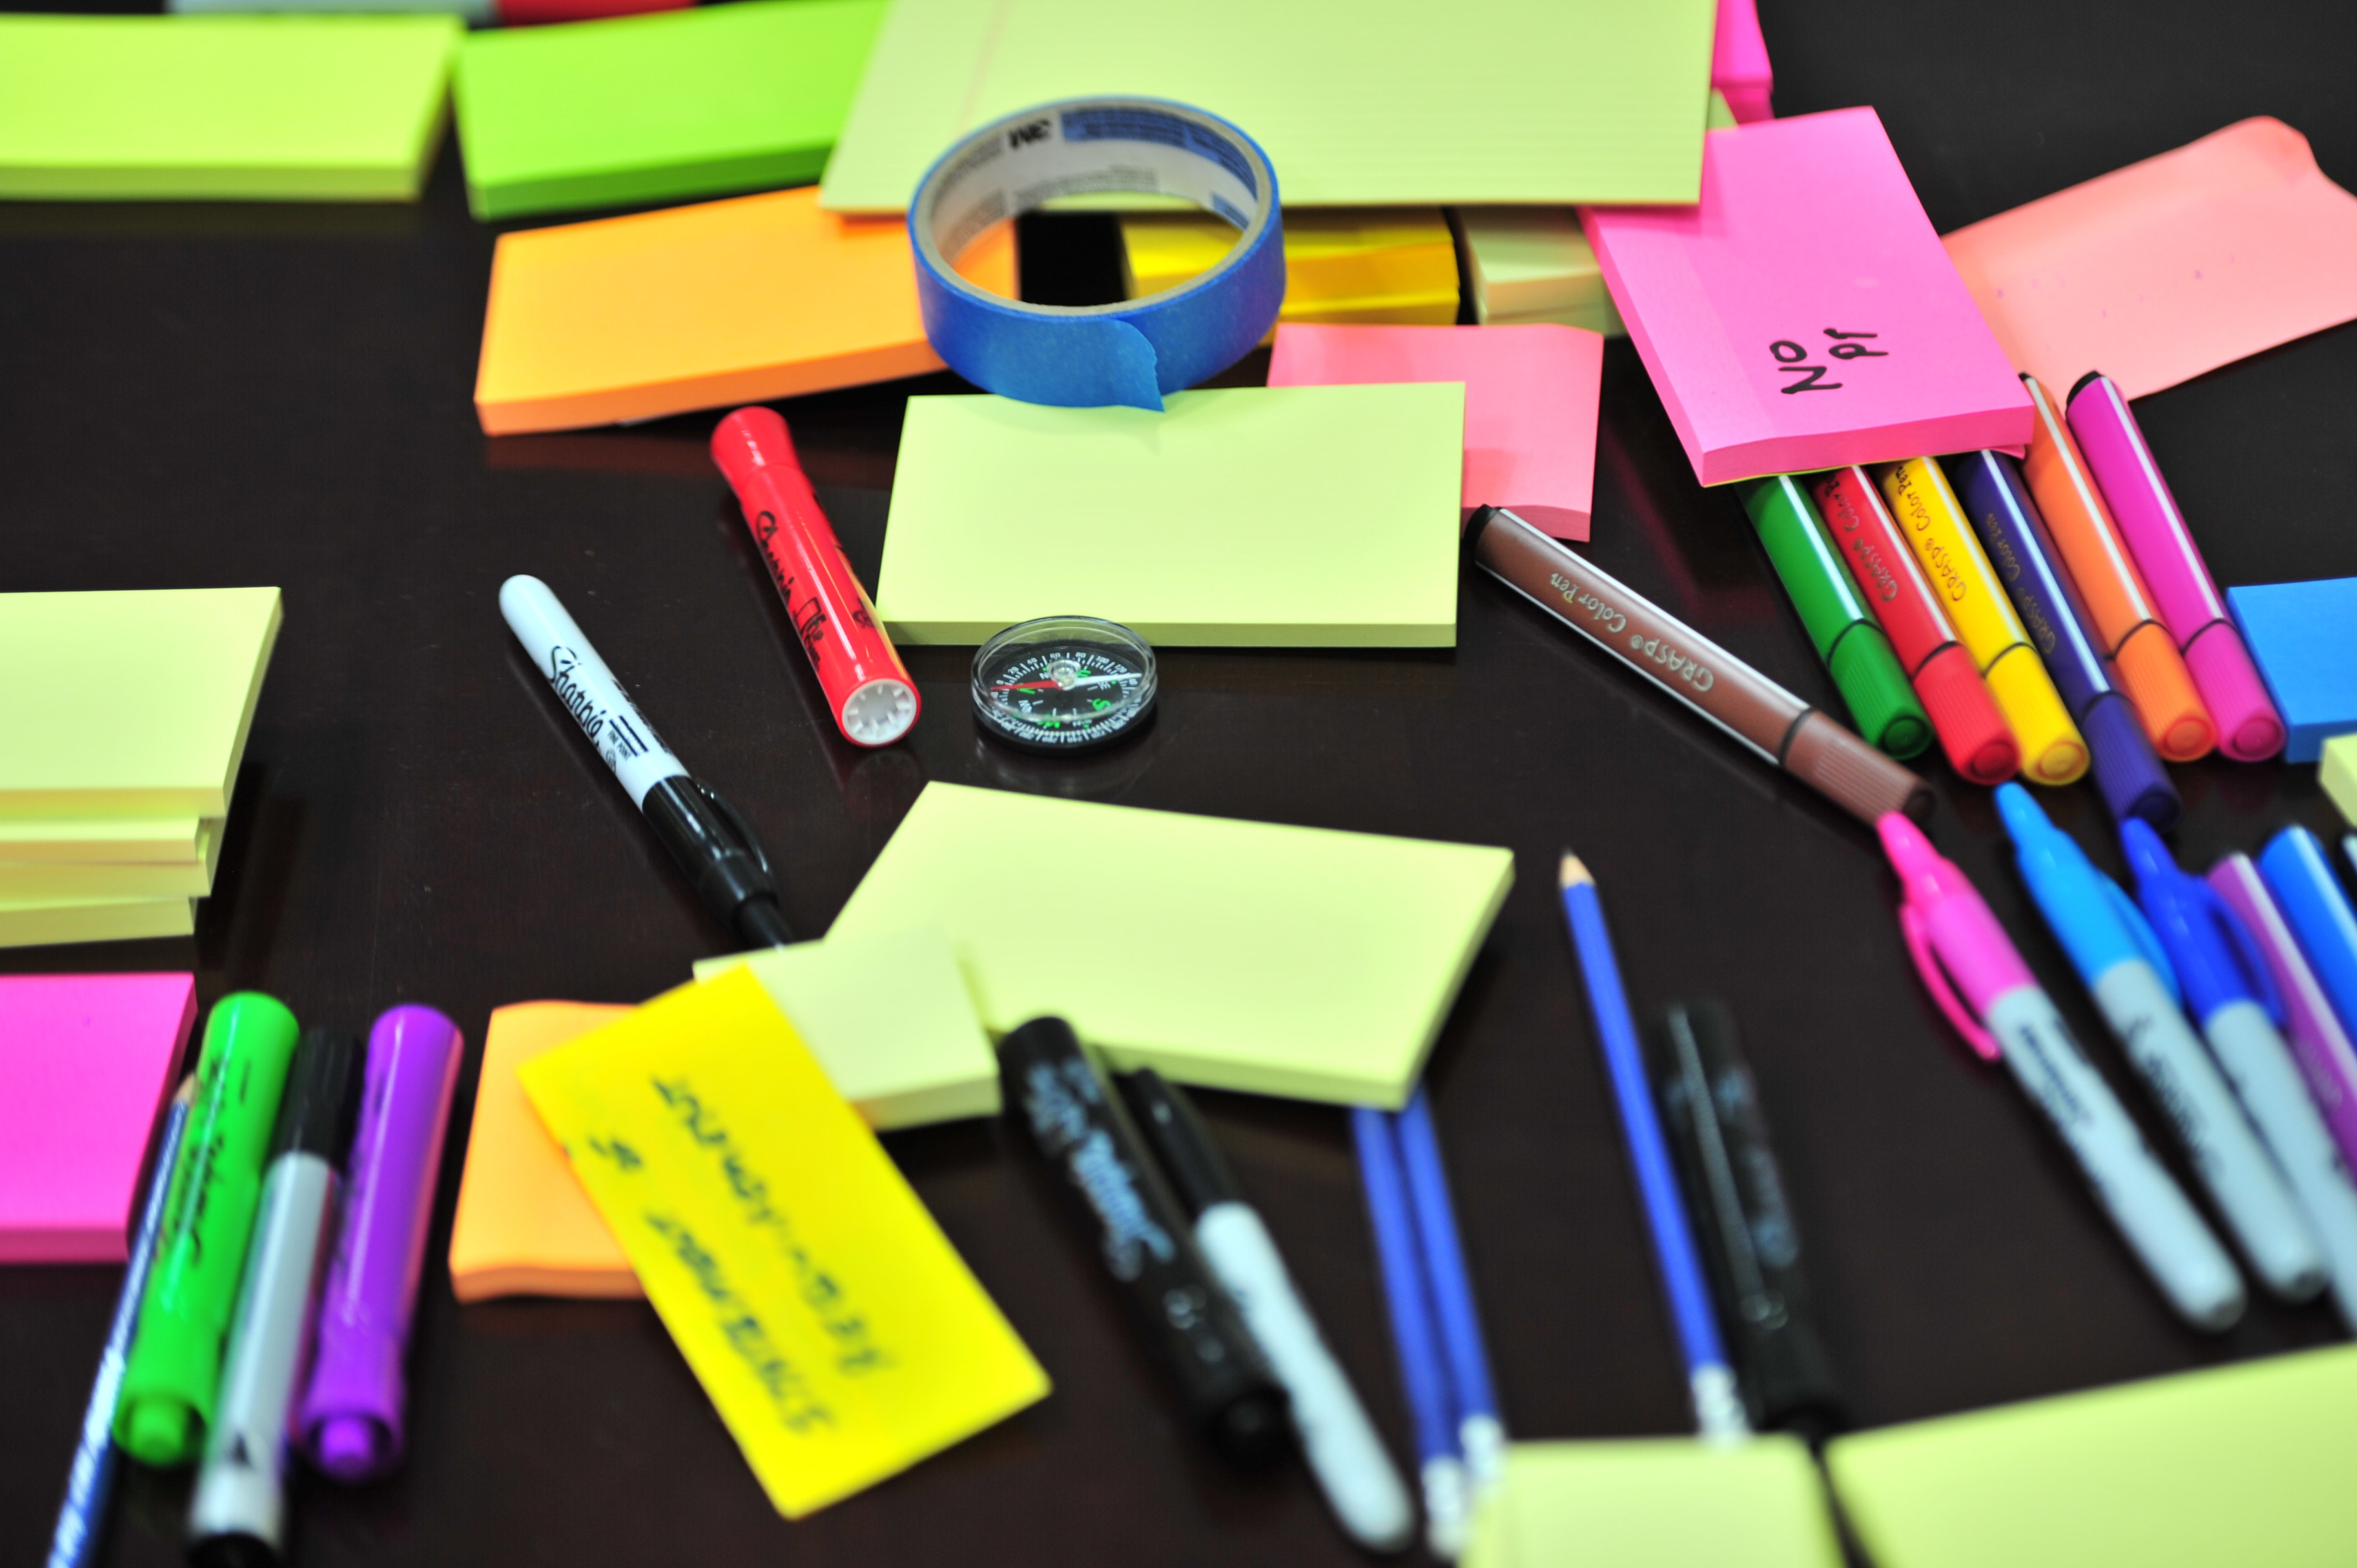 Photo of Sticky Notes and Colored Pens Scrambled on Table, Art, Office, Write, Table, HQ Photo